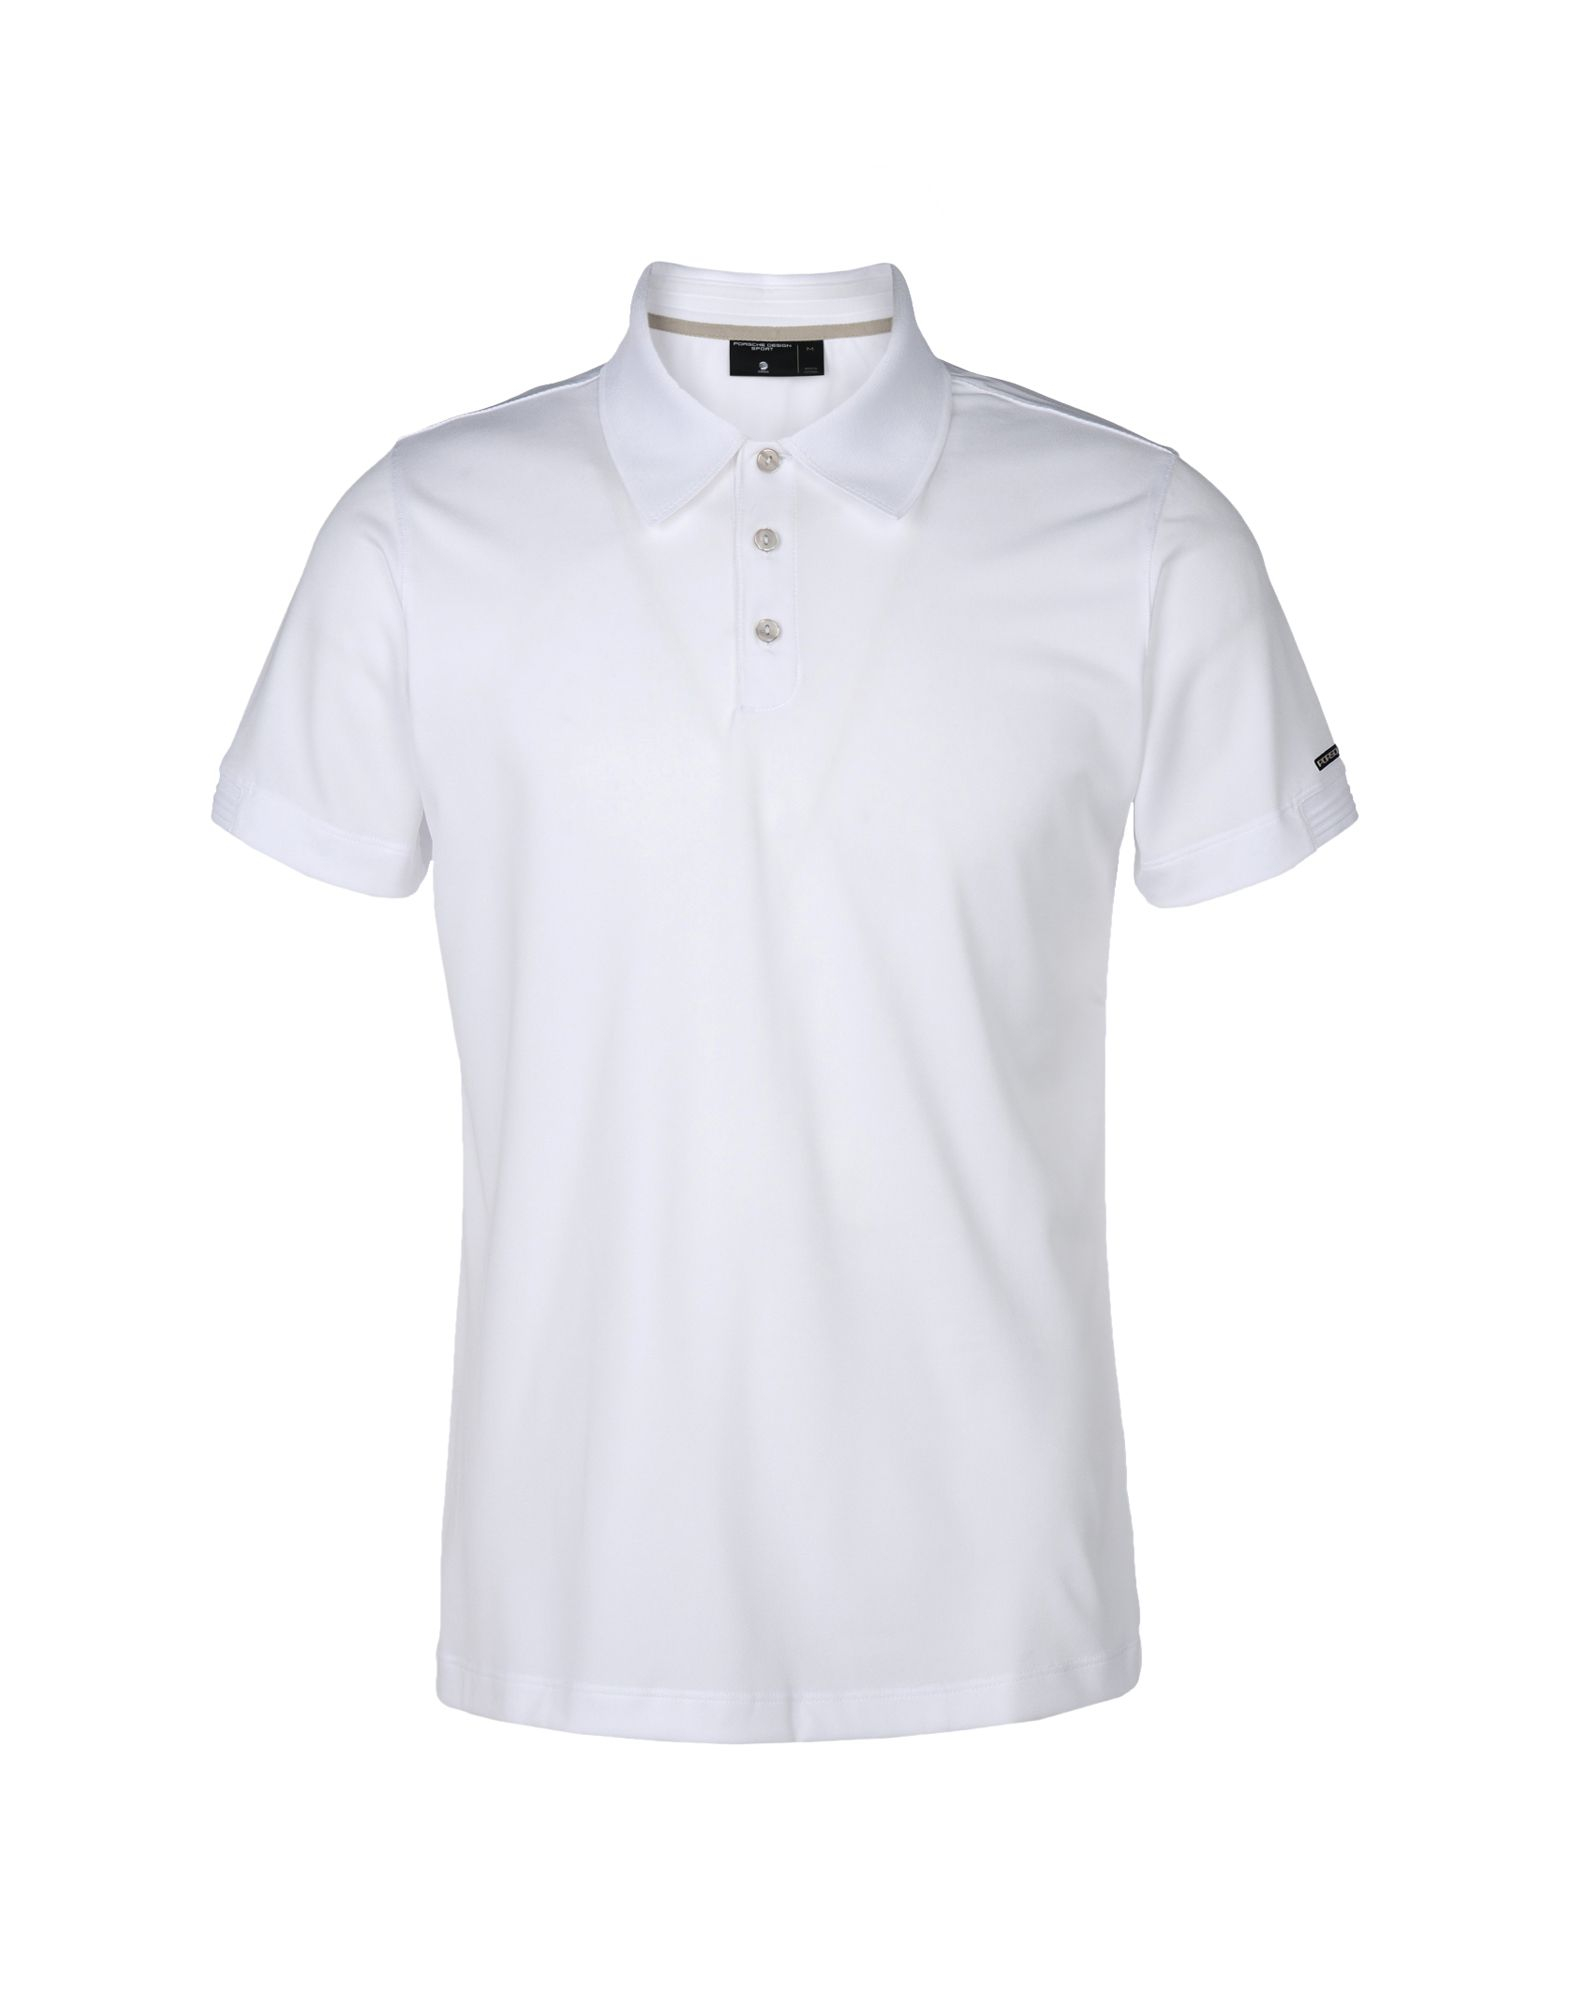 Porsche design sport by adidas polo shirt in white for men for Polo t shirt design images